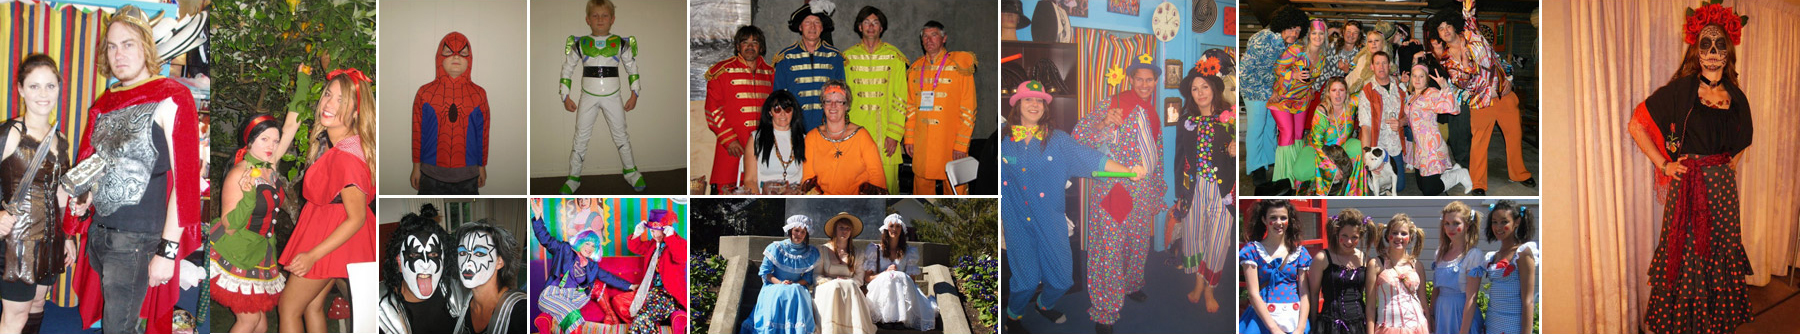 Affordable costume rental in Nelson